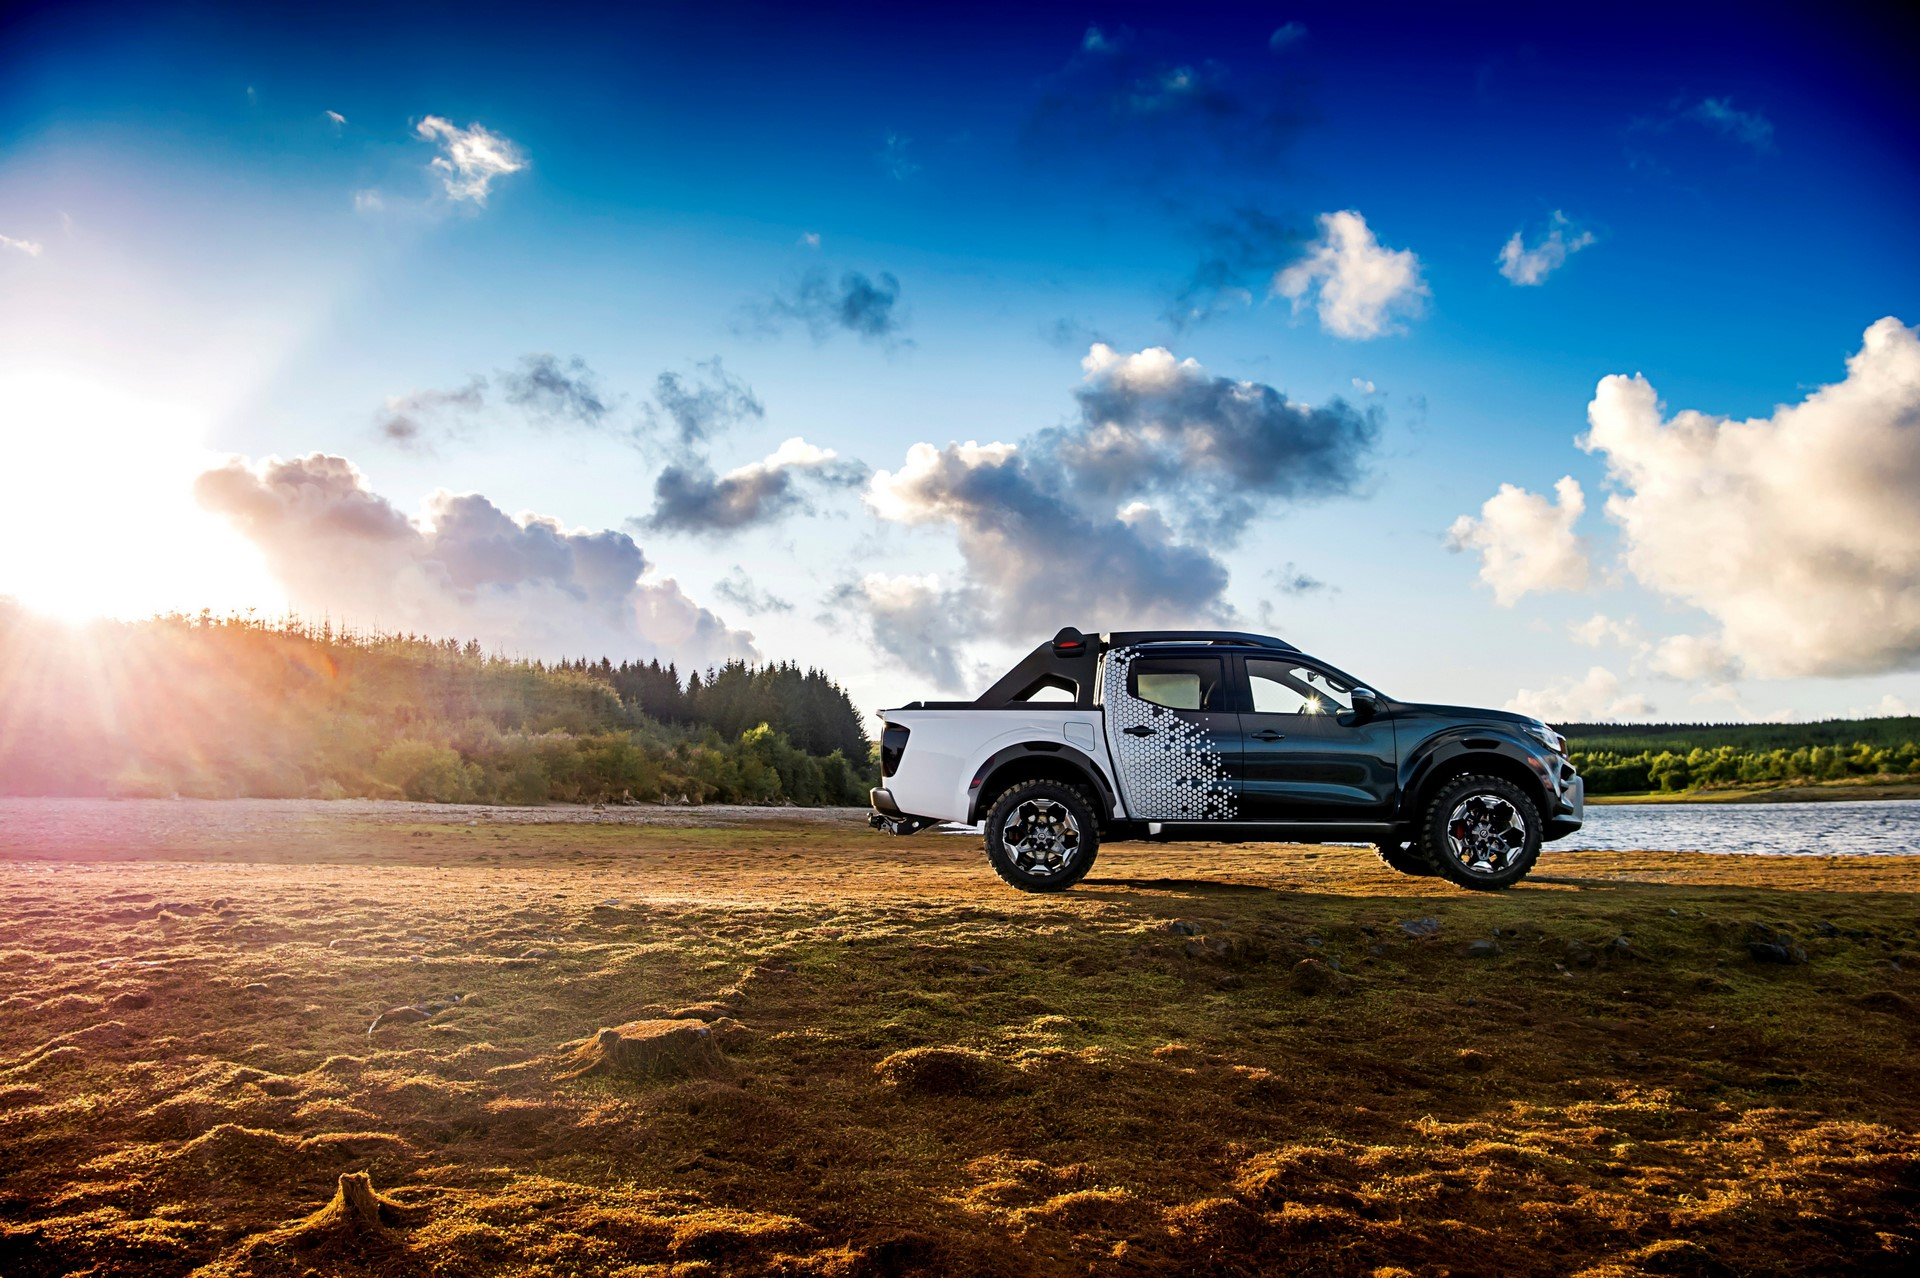 Nissan unveils mobile space observatory: the Nissan Navara Dark Sky Concept